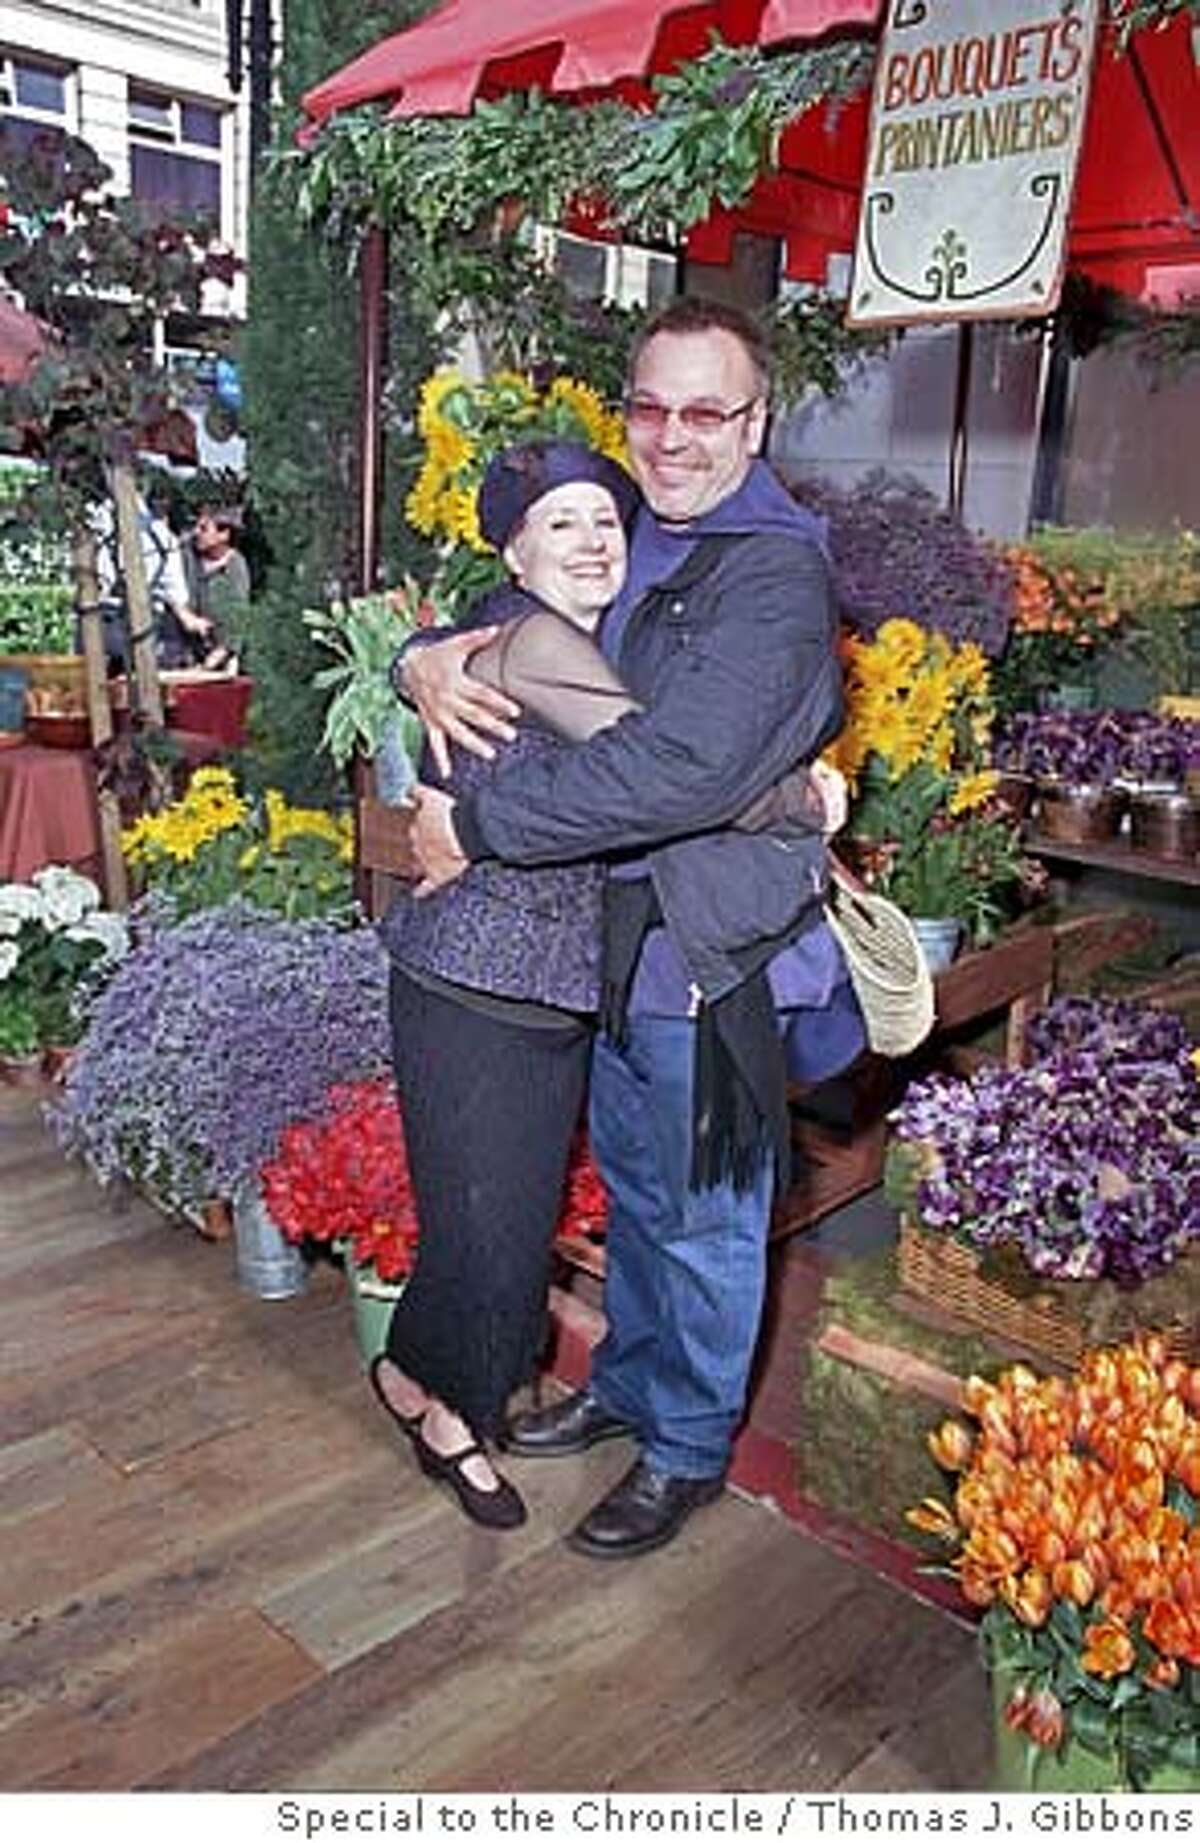 SOCIAL31 Alice Waters get a hug from Stanlee Gatti ( celebrating an appetite for life ) Special to the Chronicle/Thomas J. Gibbons Alice Waters gets a hug from Stanlee Gatti at the very-French Hermes opening in San Francisco. also ran 12/31/03 CAT